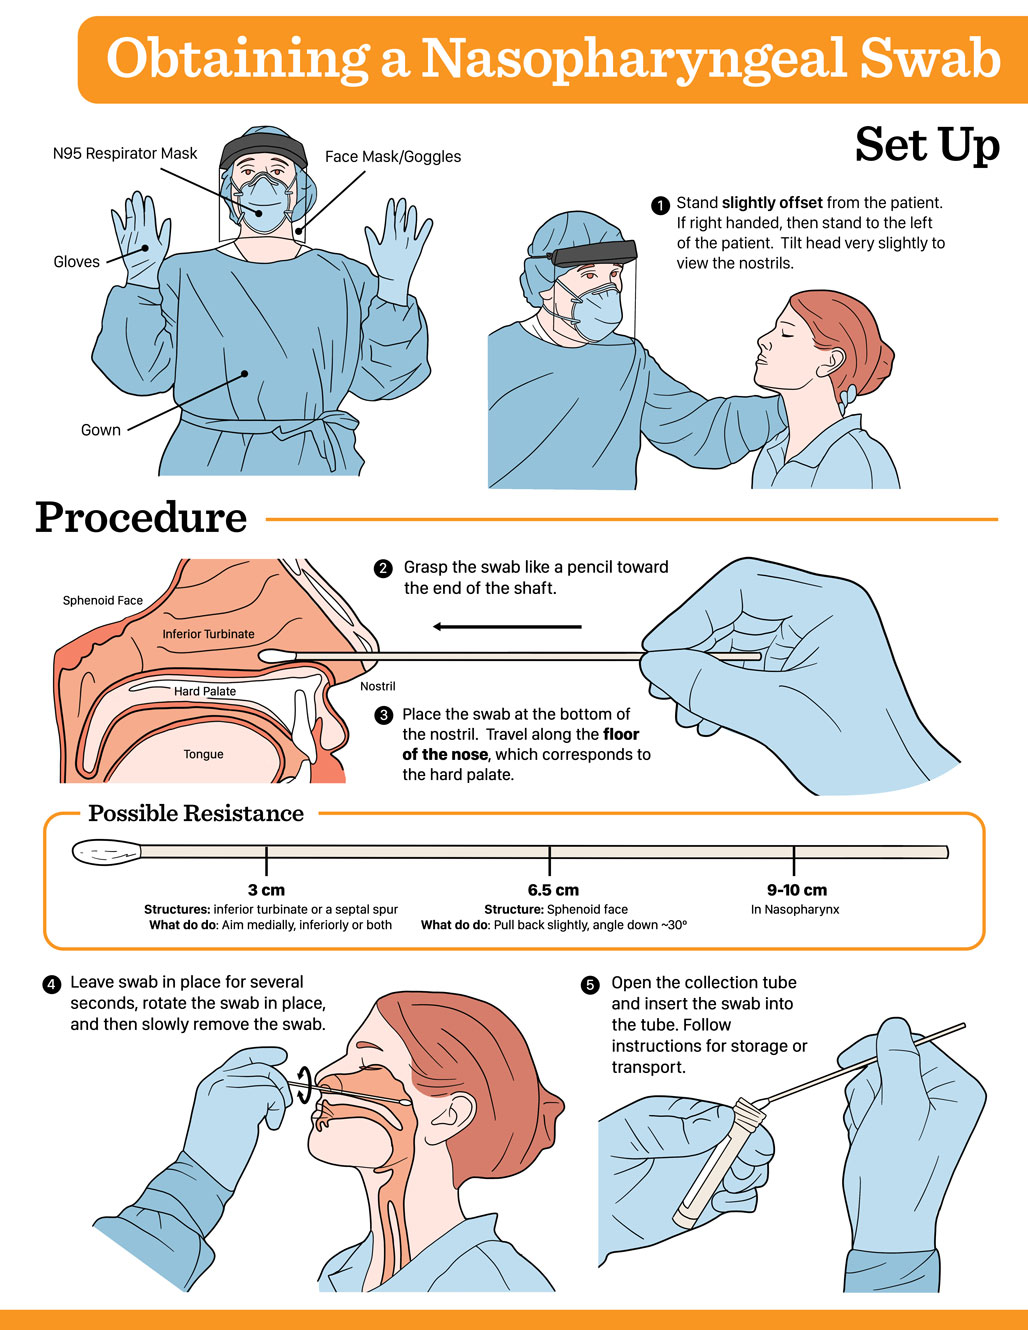 Infographic for obtaining a nasopharyngeal swab